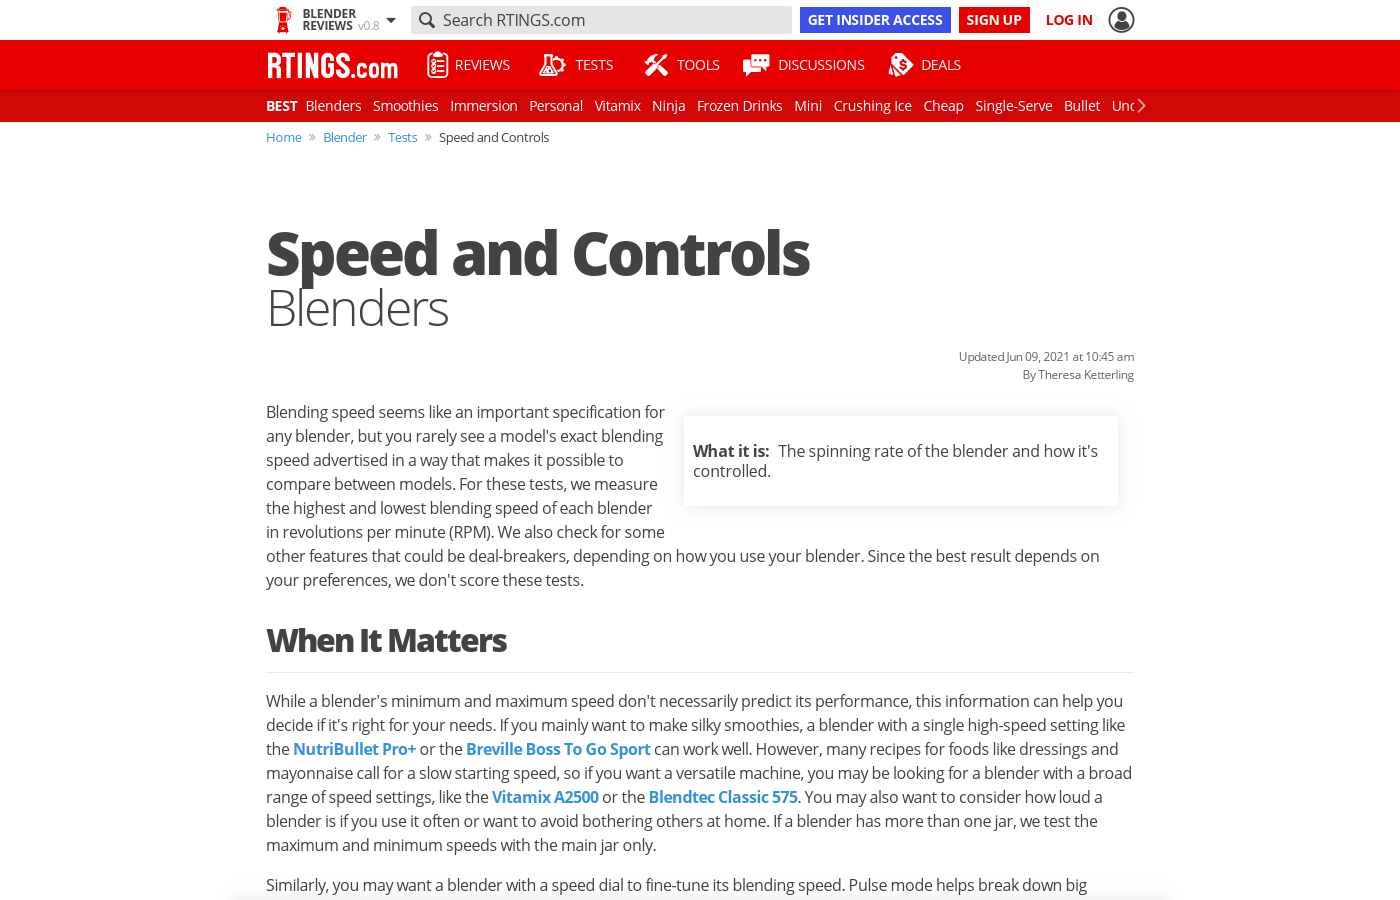 Speed and Controls